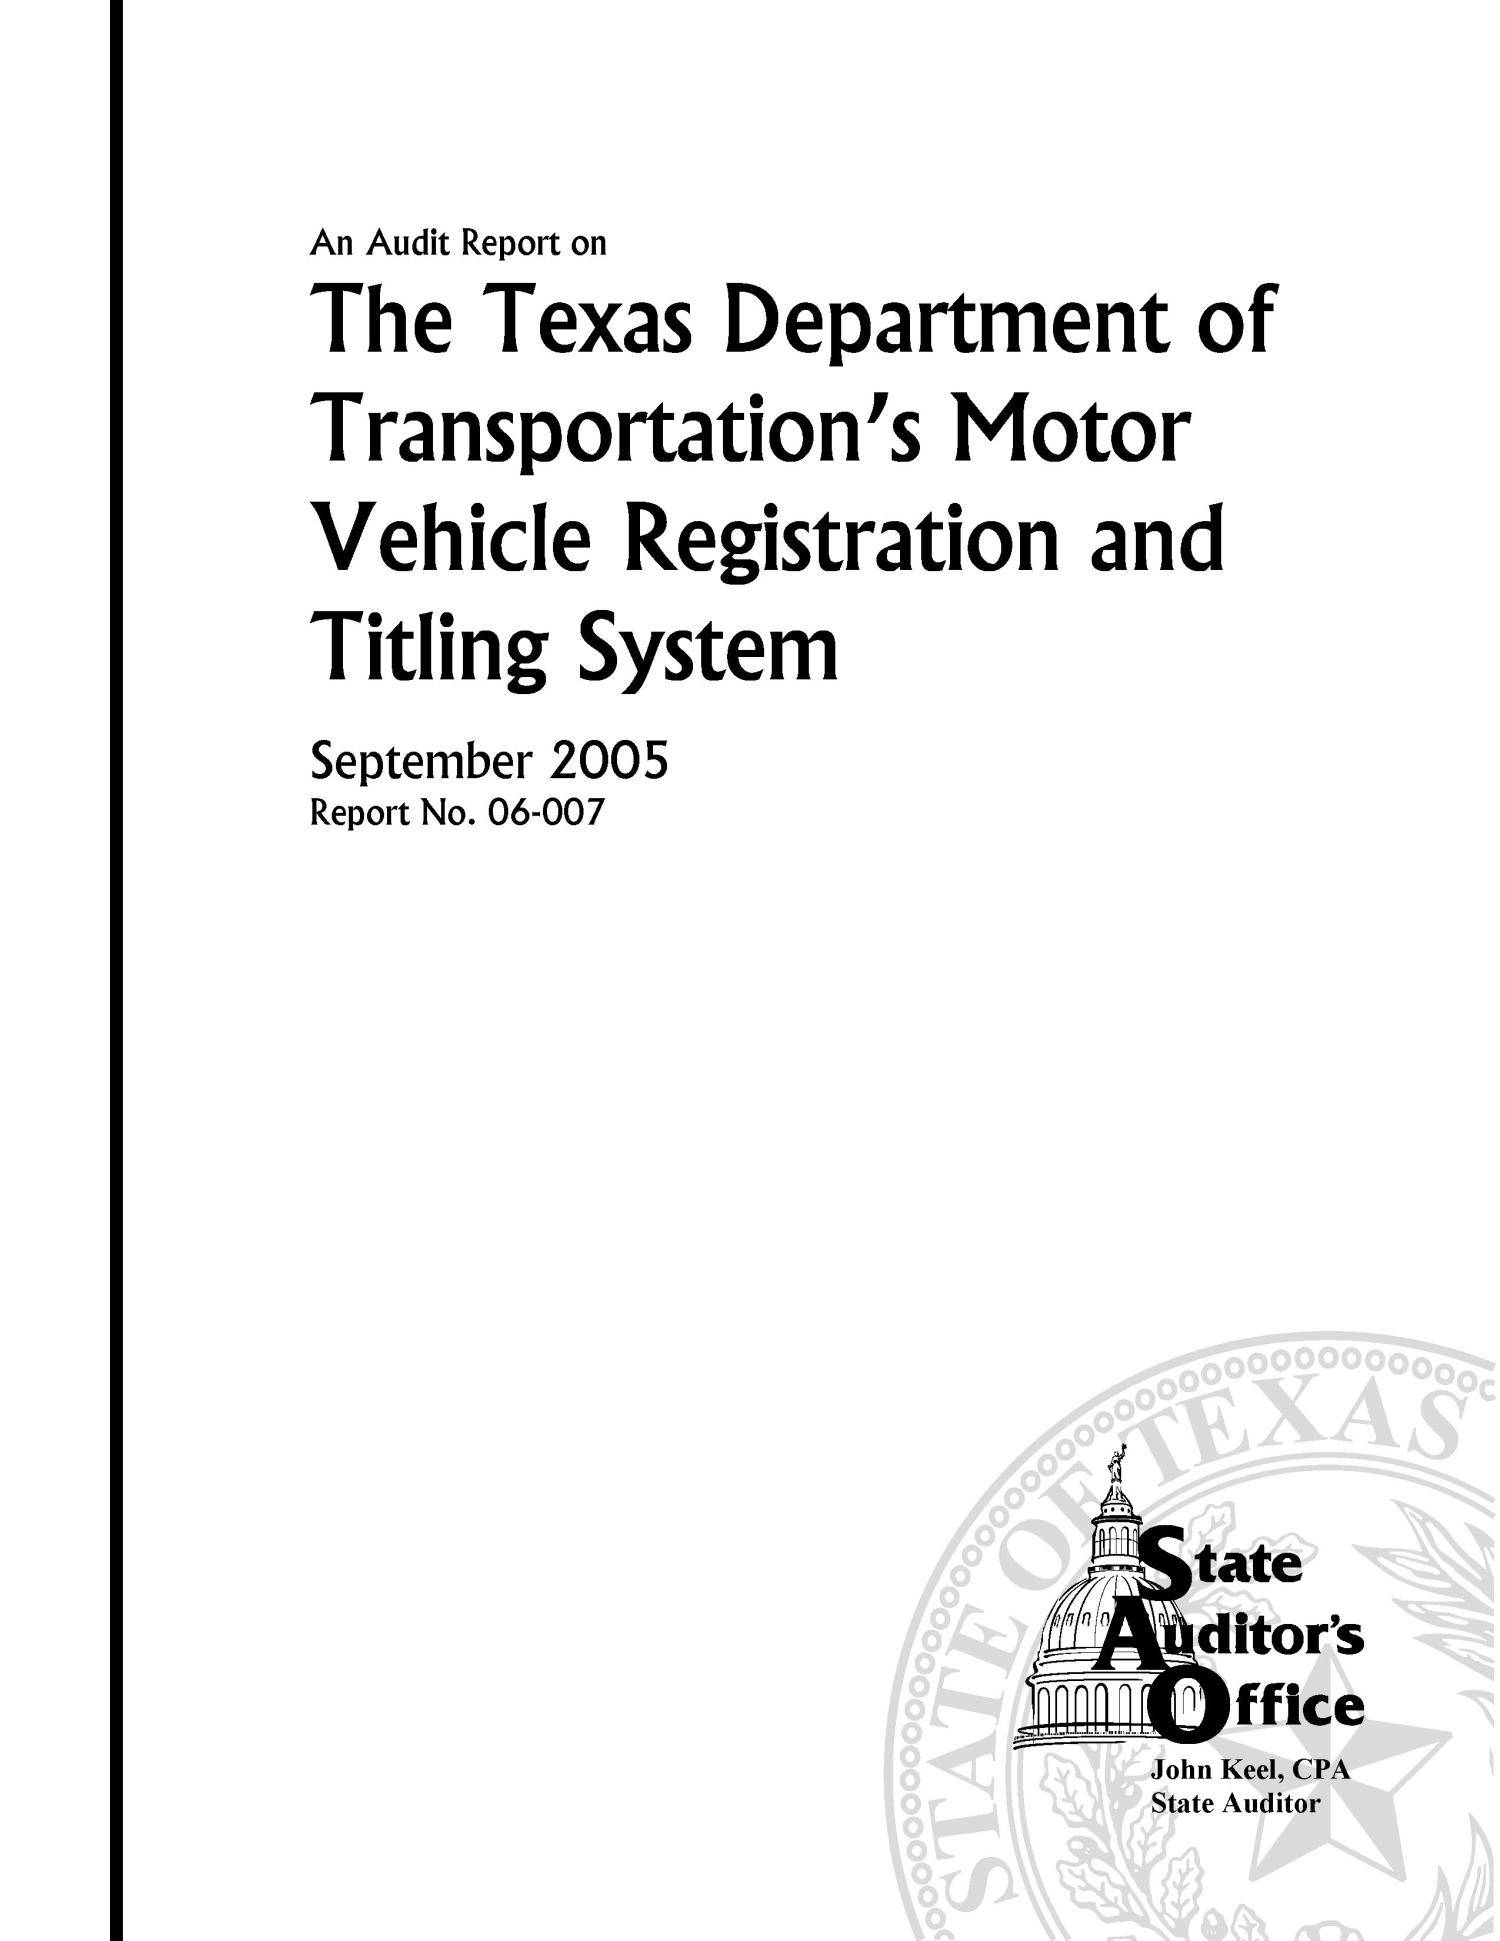 An Audit Report on the Texas Department of Transportation's Motor Vehicle Registration and Titling System - The Portal to Texas History